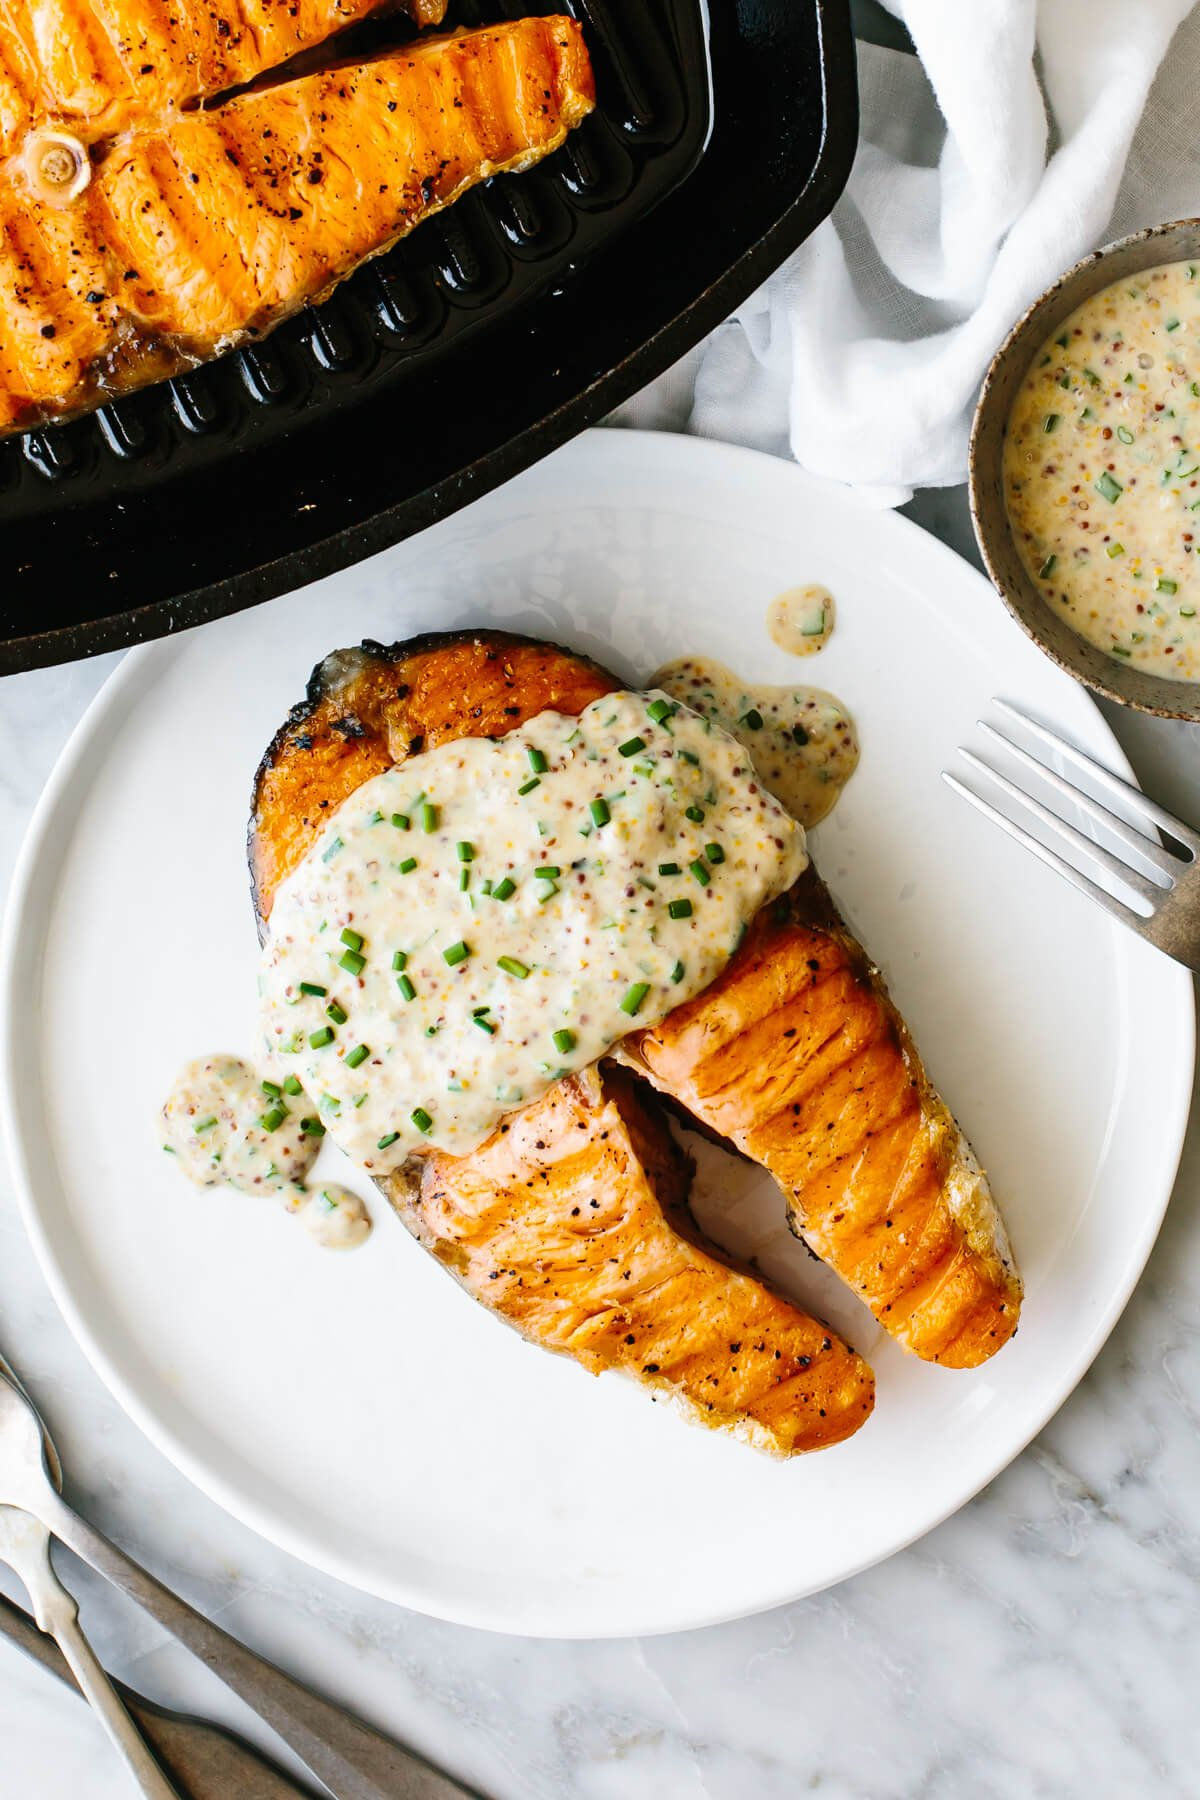 Grilled salmon steak on a plate next to a skillet